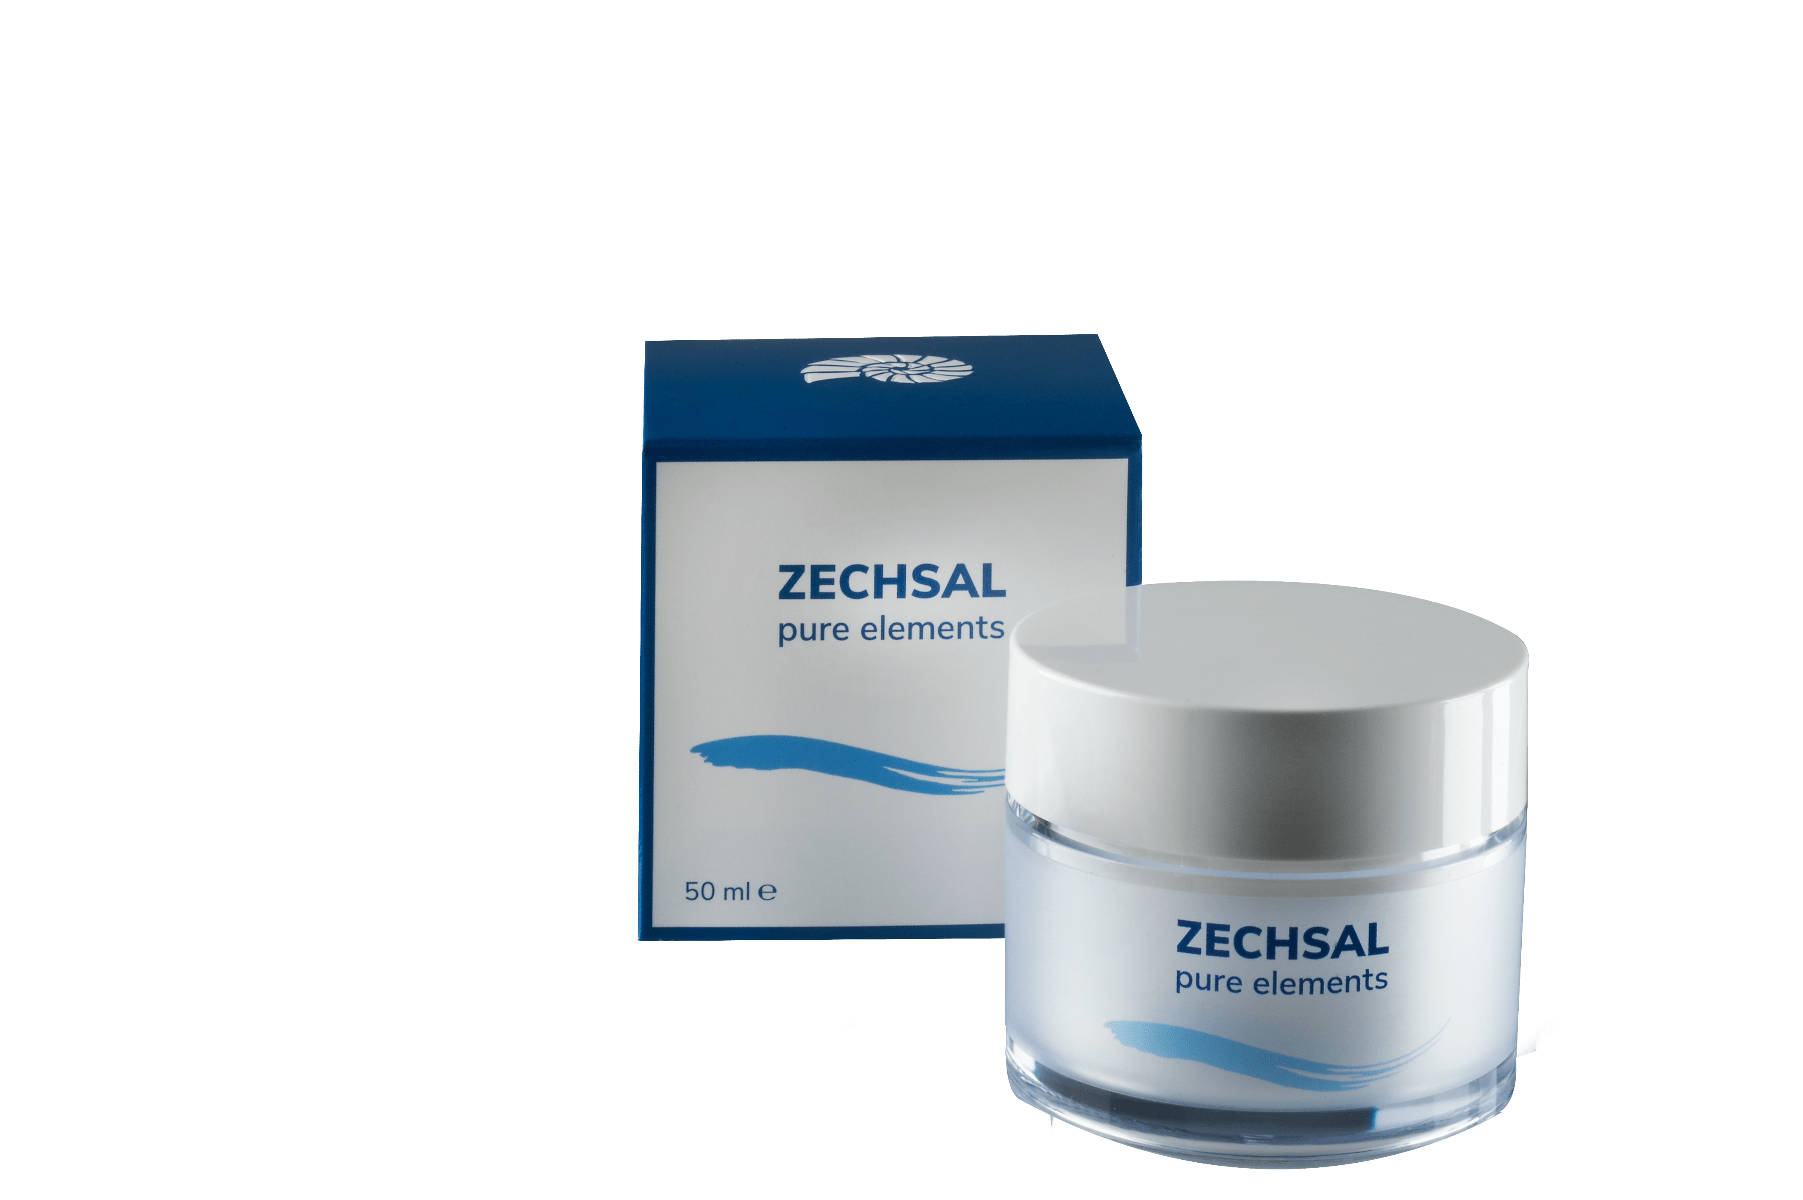 NIEUW! Zechsal Pure Elements balancing cream, 50 ml.